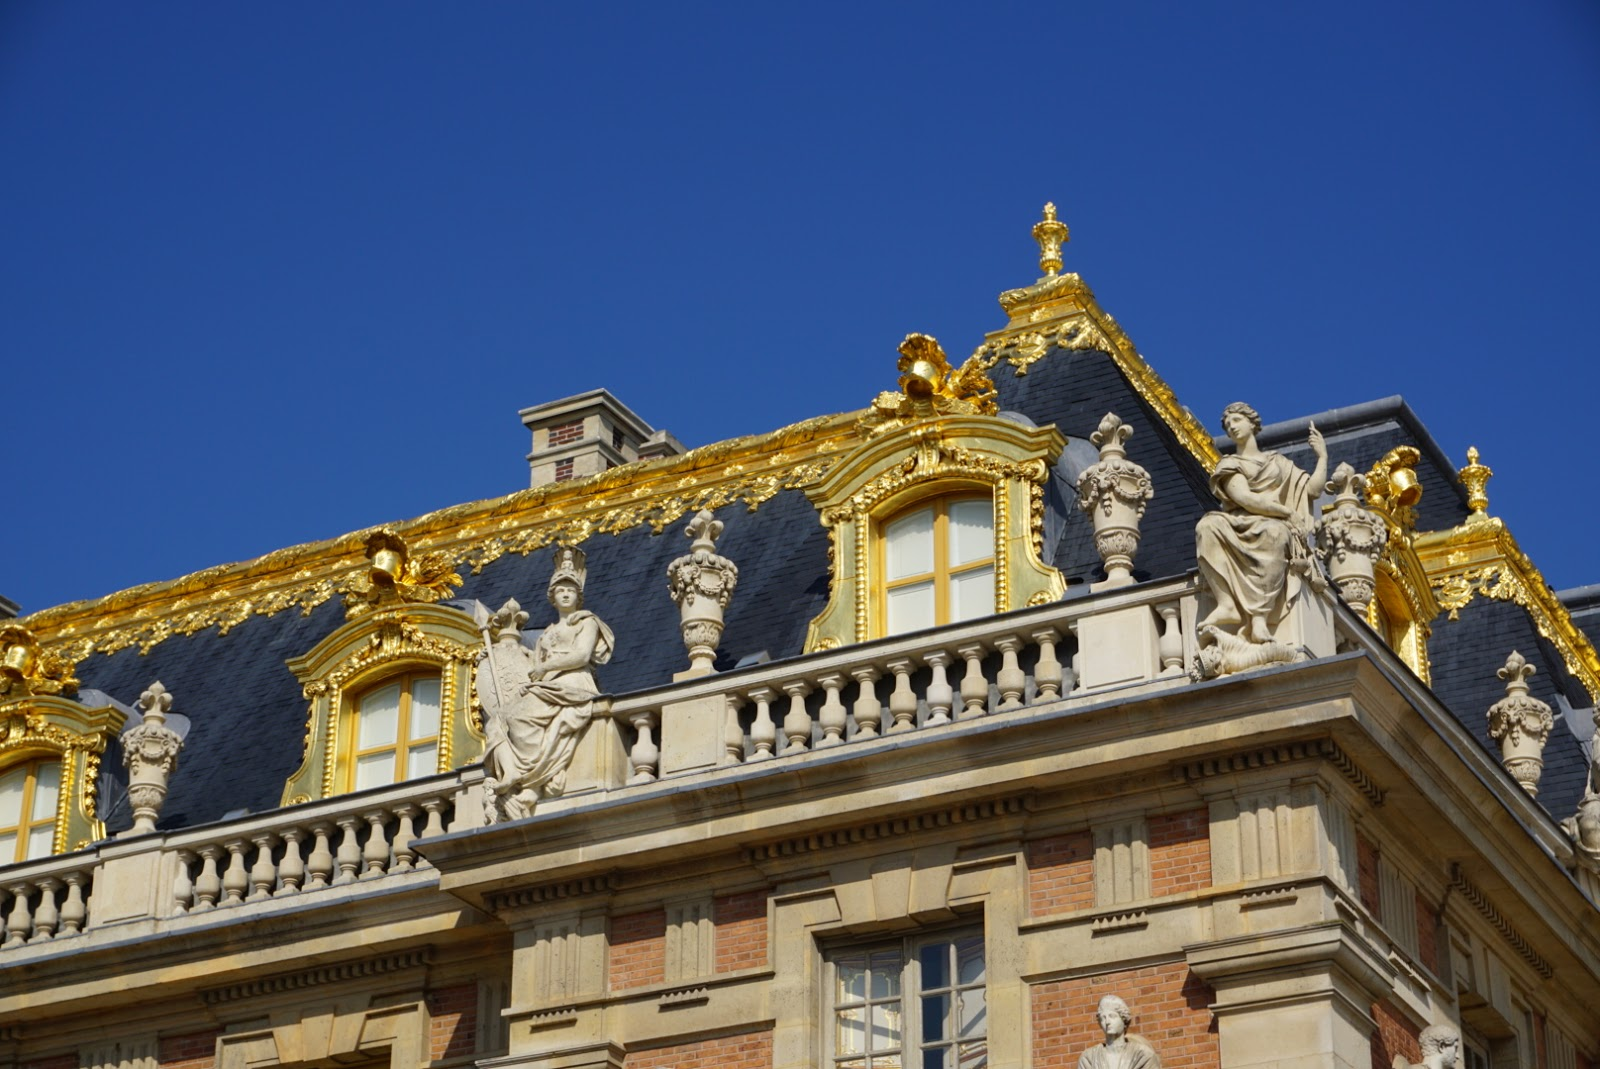 Rooms: Visiting Palace Of Versailles, France